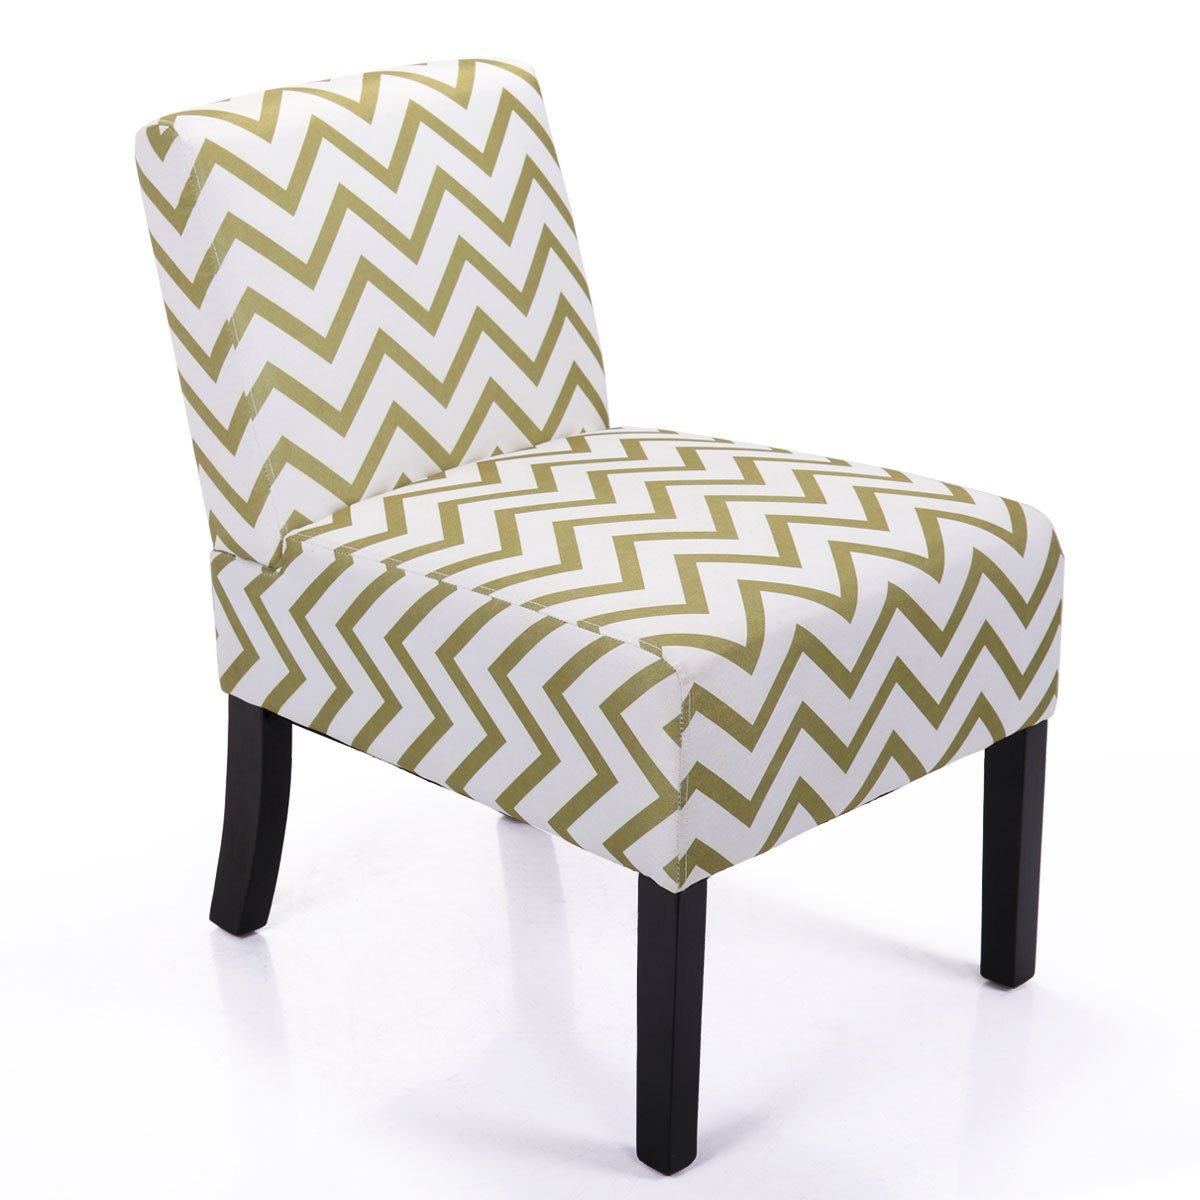 LAZYMOON Leisure Armless Chair Modern Contemporary Upholstered Single Couch Seat Accent Chair Living Room Chair,Wave Print Willow Green